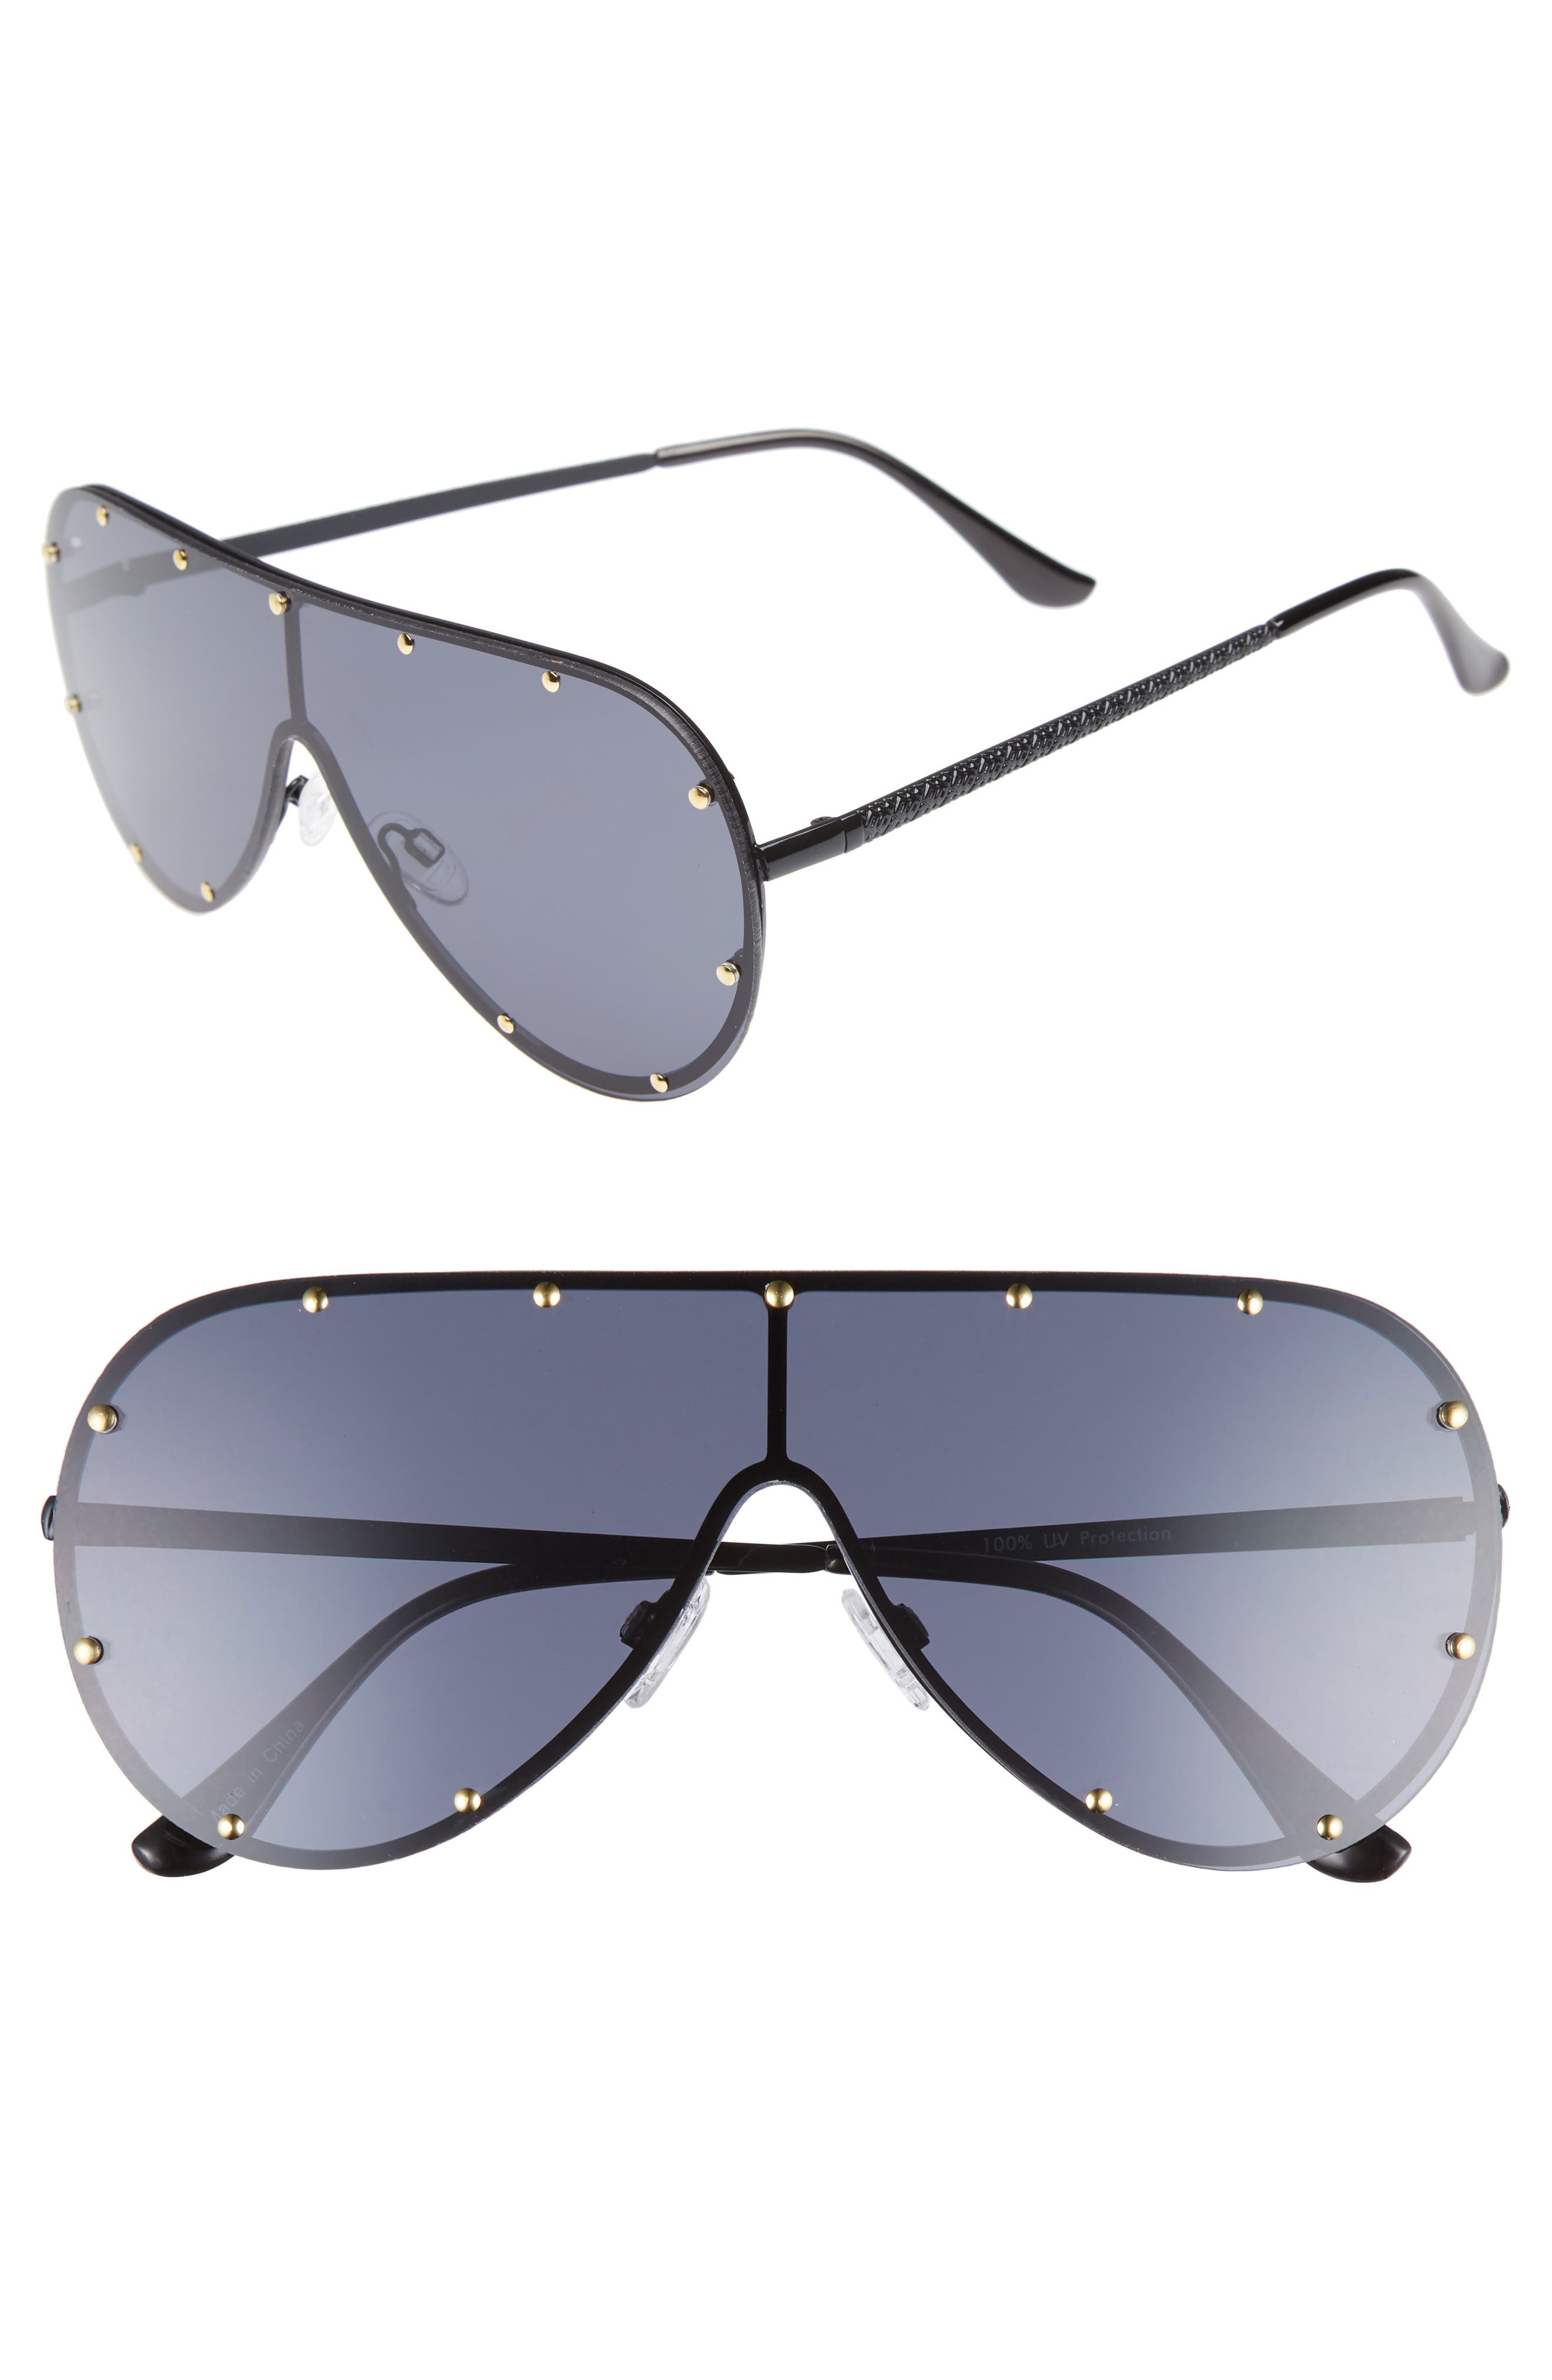 65mm Studded Shield Sunglasses,                         Main,                         color, 001